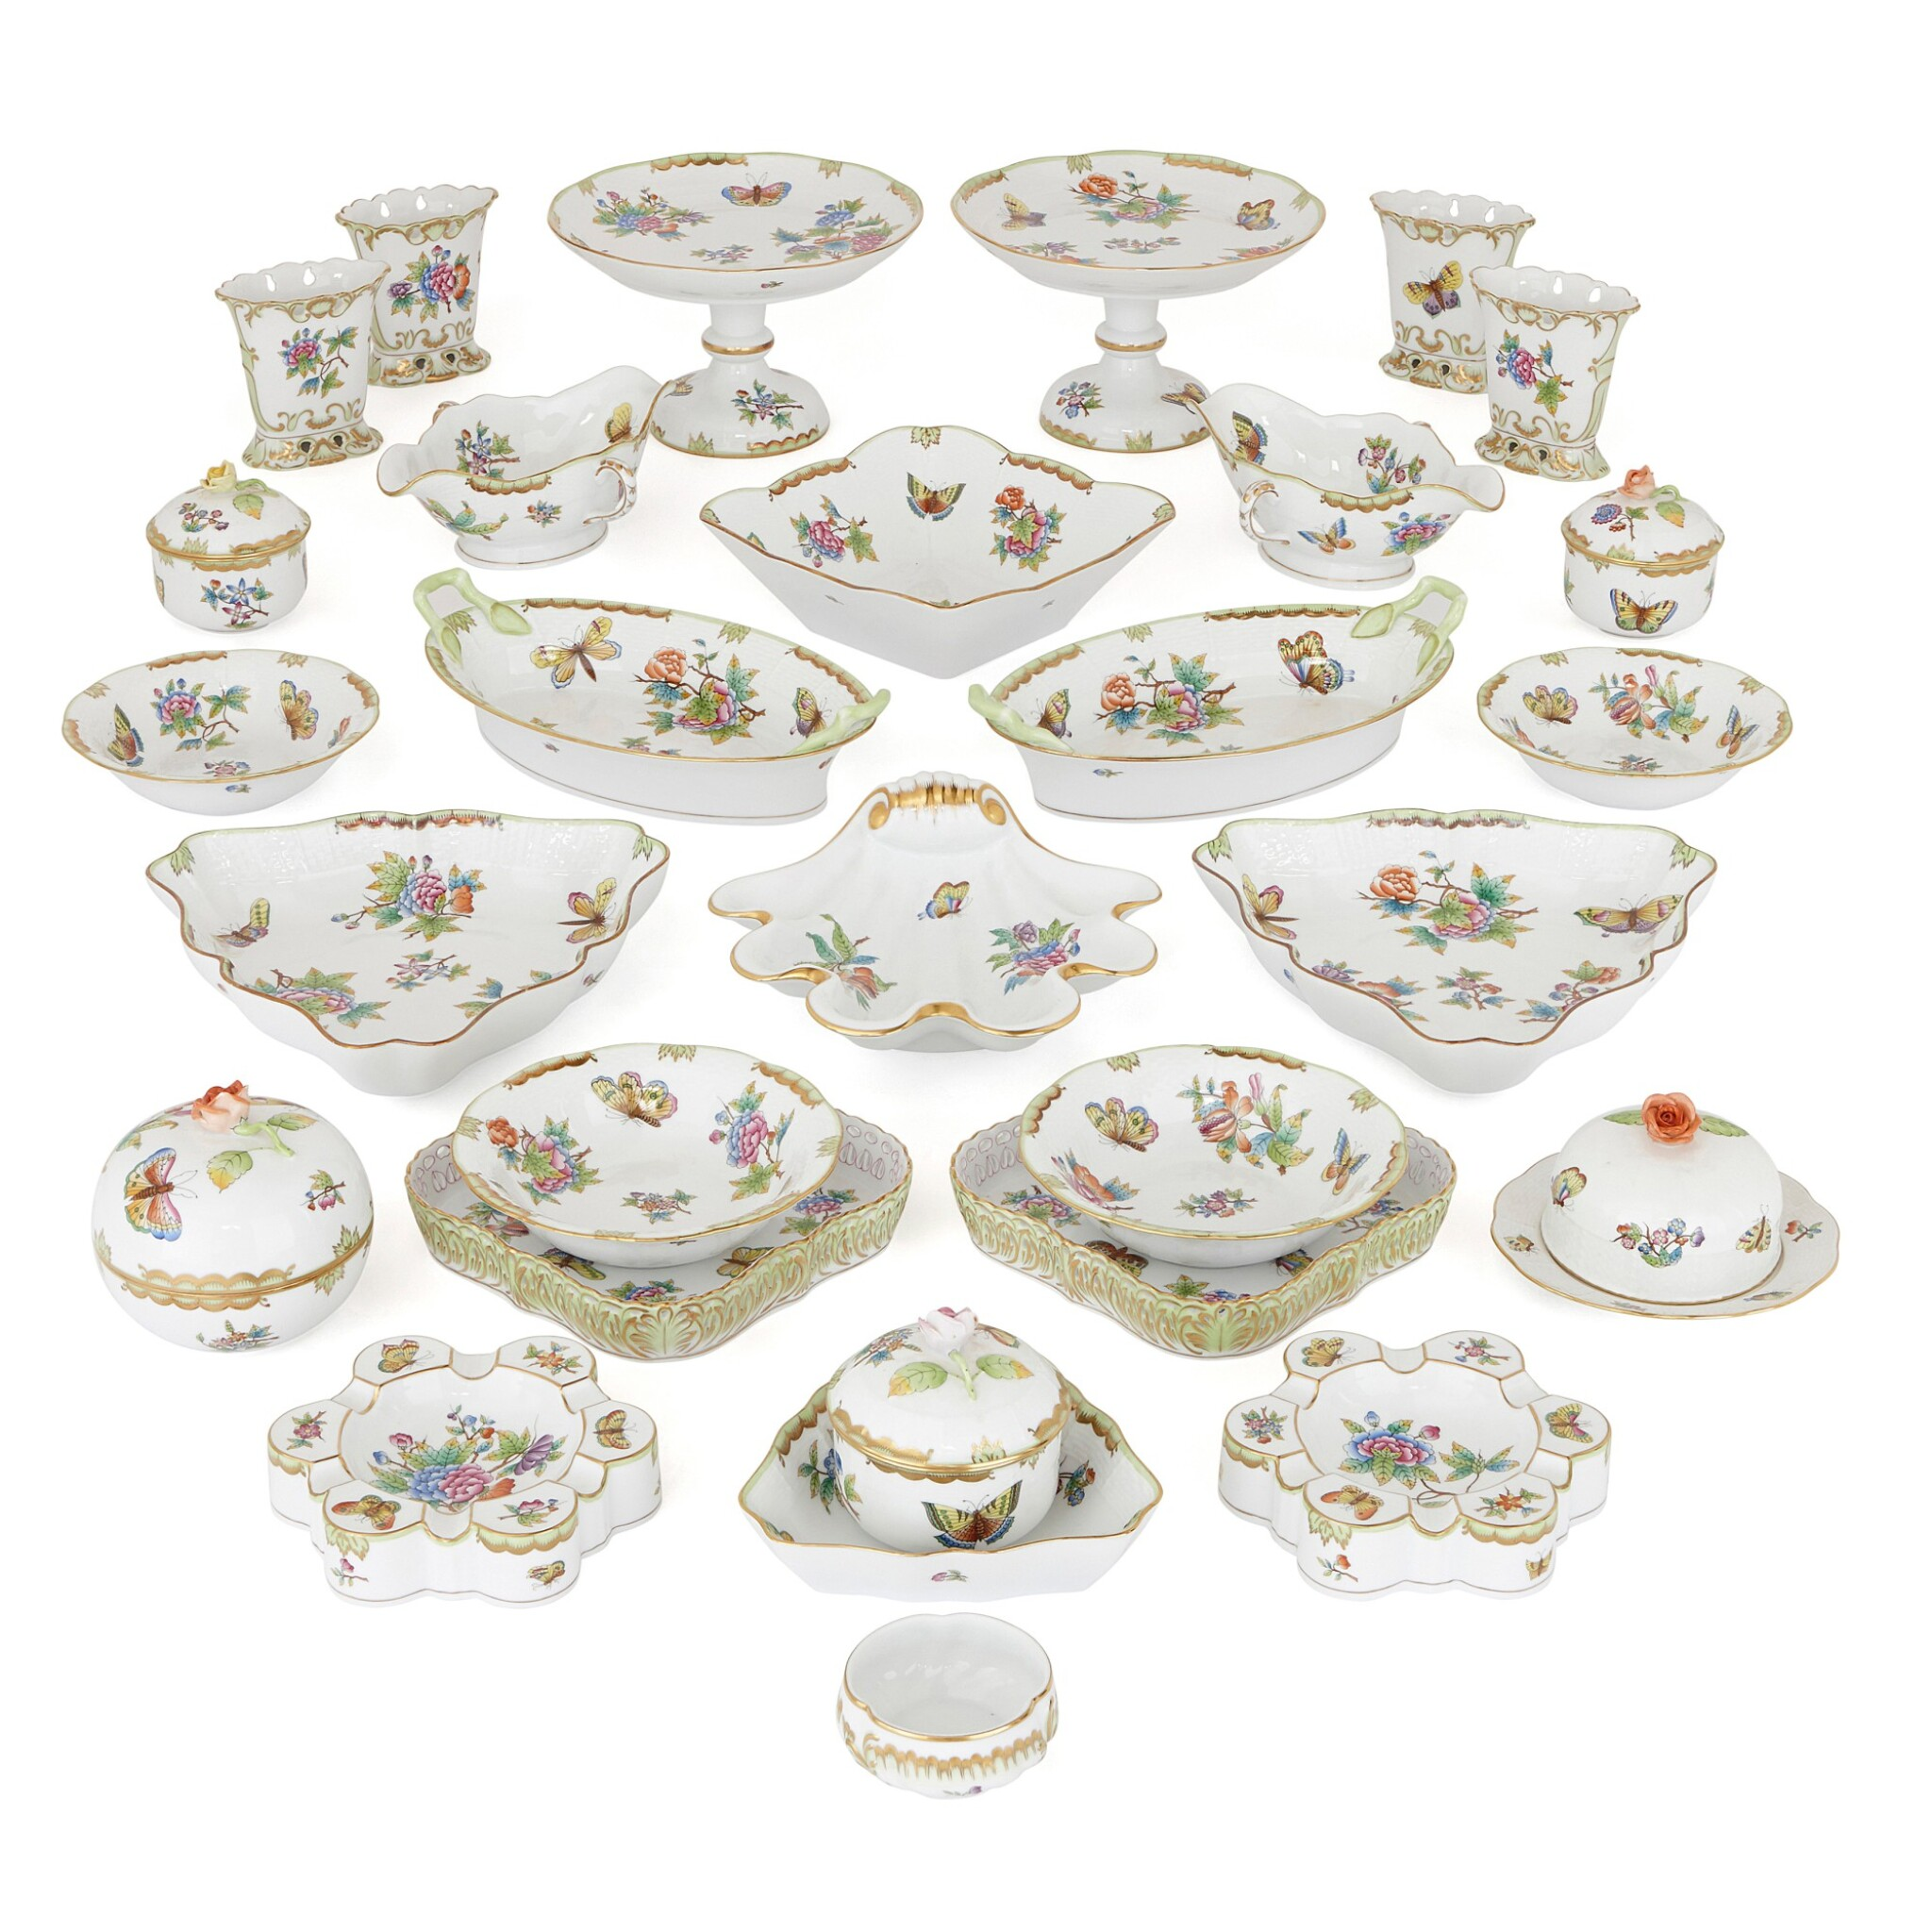 """View full screen - View 1 of Lot 2. AN EXTENSIVE HEREND PORCELAIN """"VICTORIA"""" PATTERN COMPOSITE PART DINNER AND DESSERT SERVICE, 20TH CENTURY."""